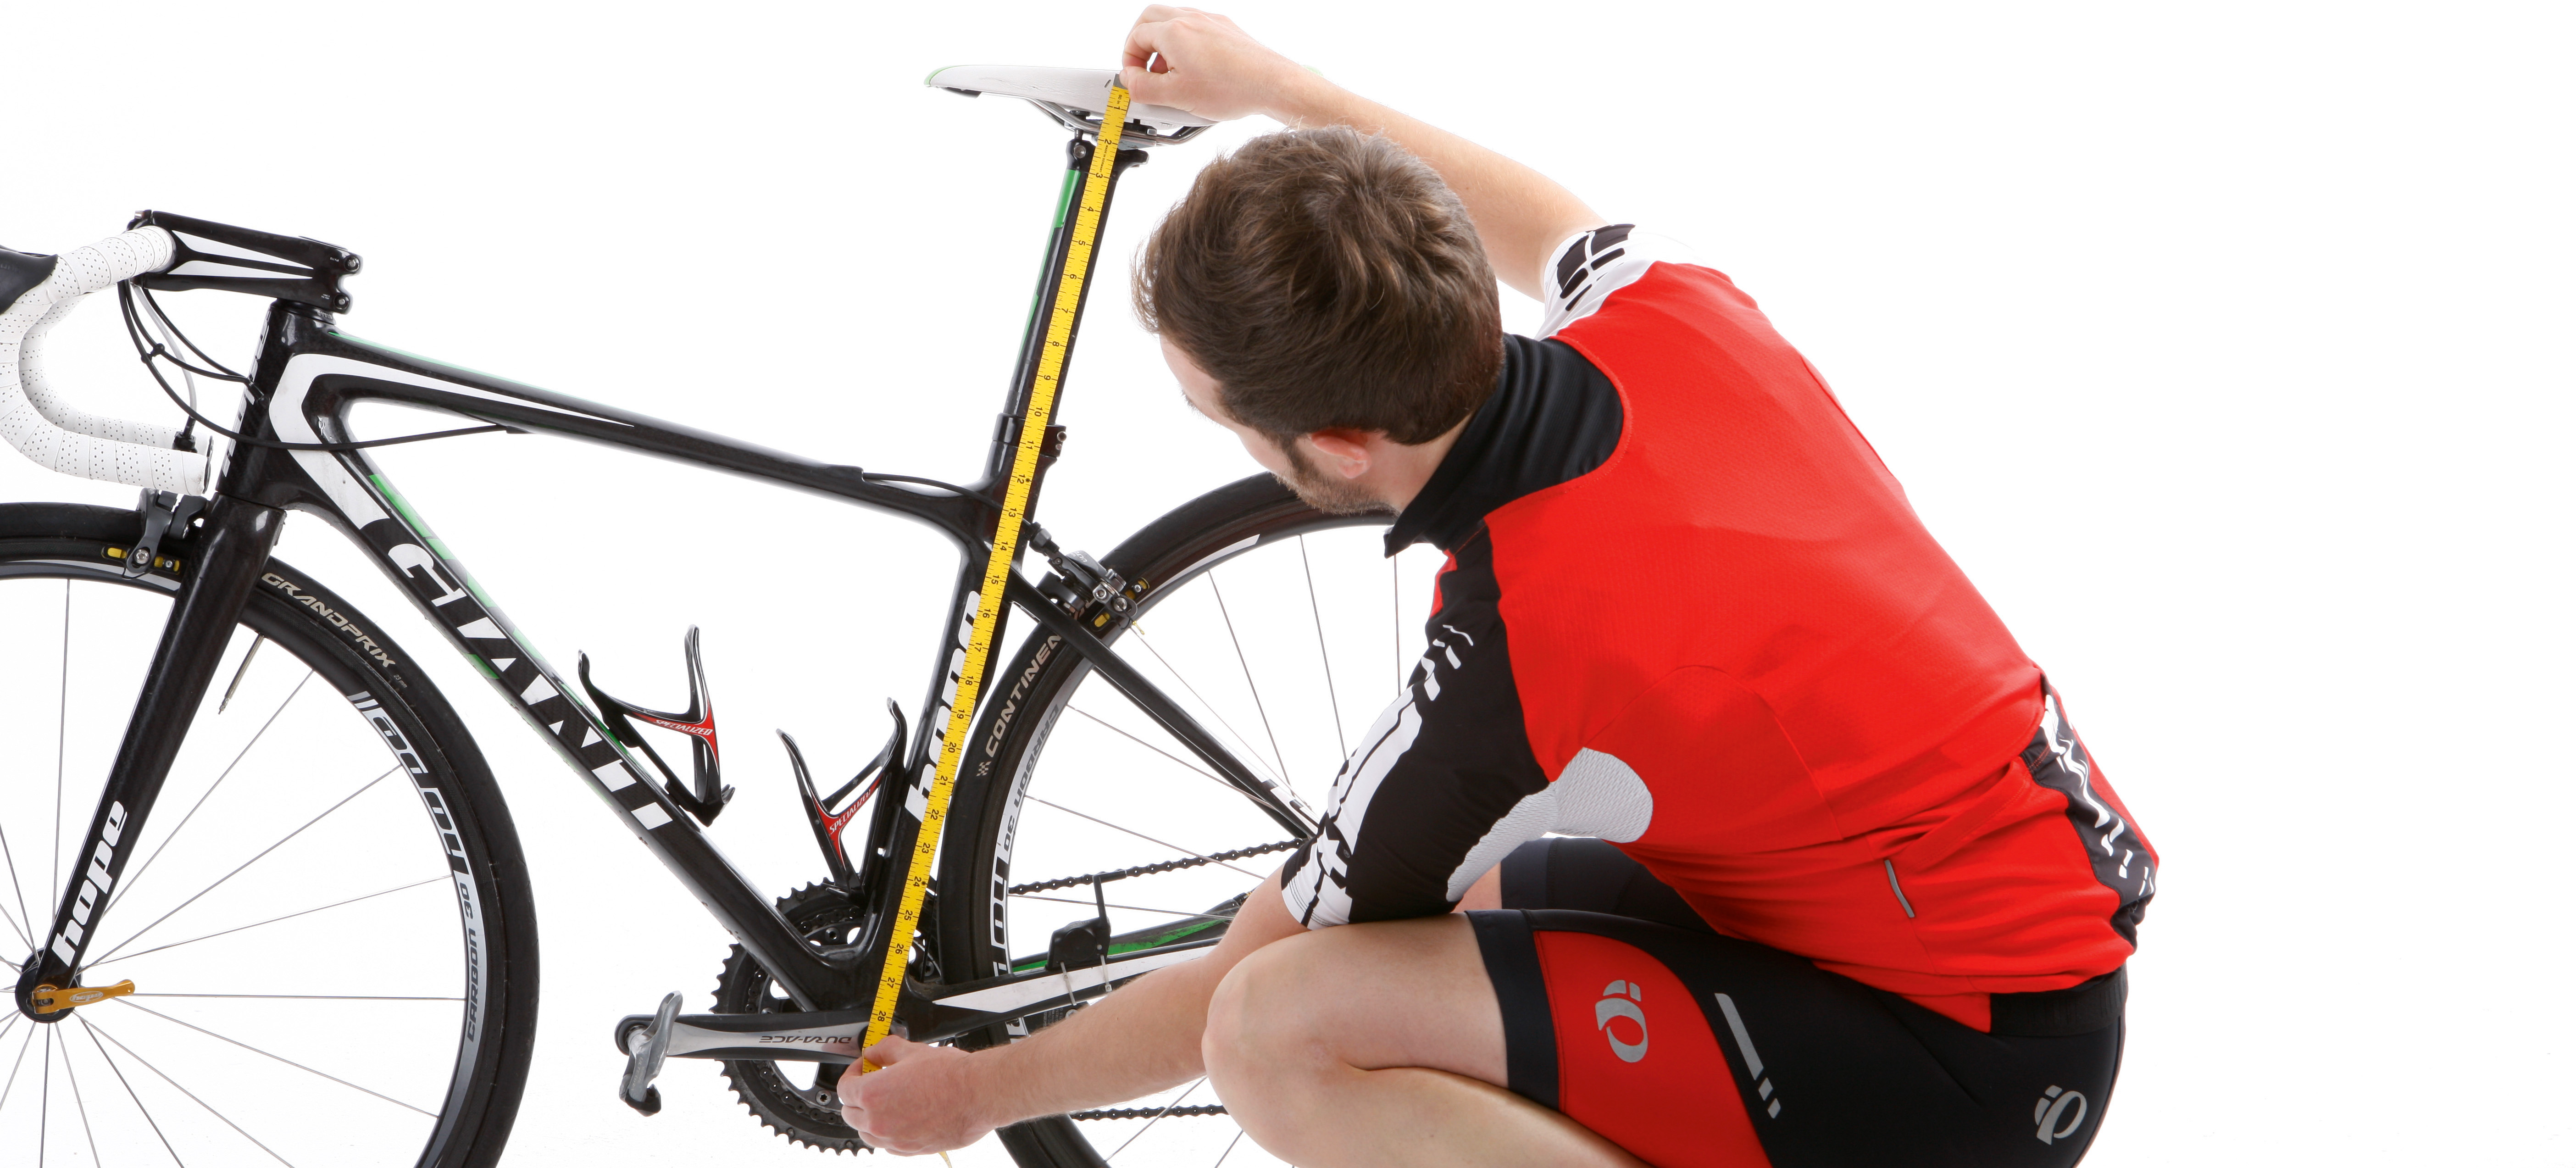 Proper Bike Fit Can Prevent Pain and Injury images